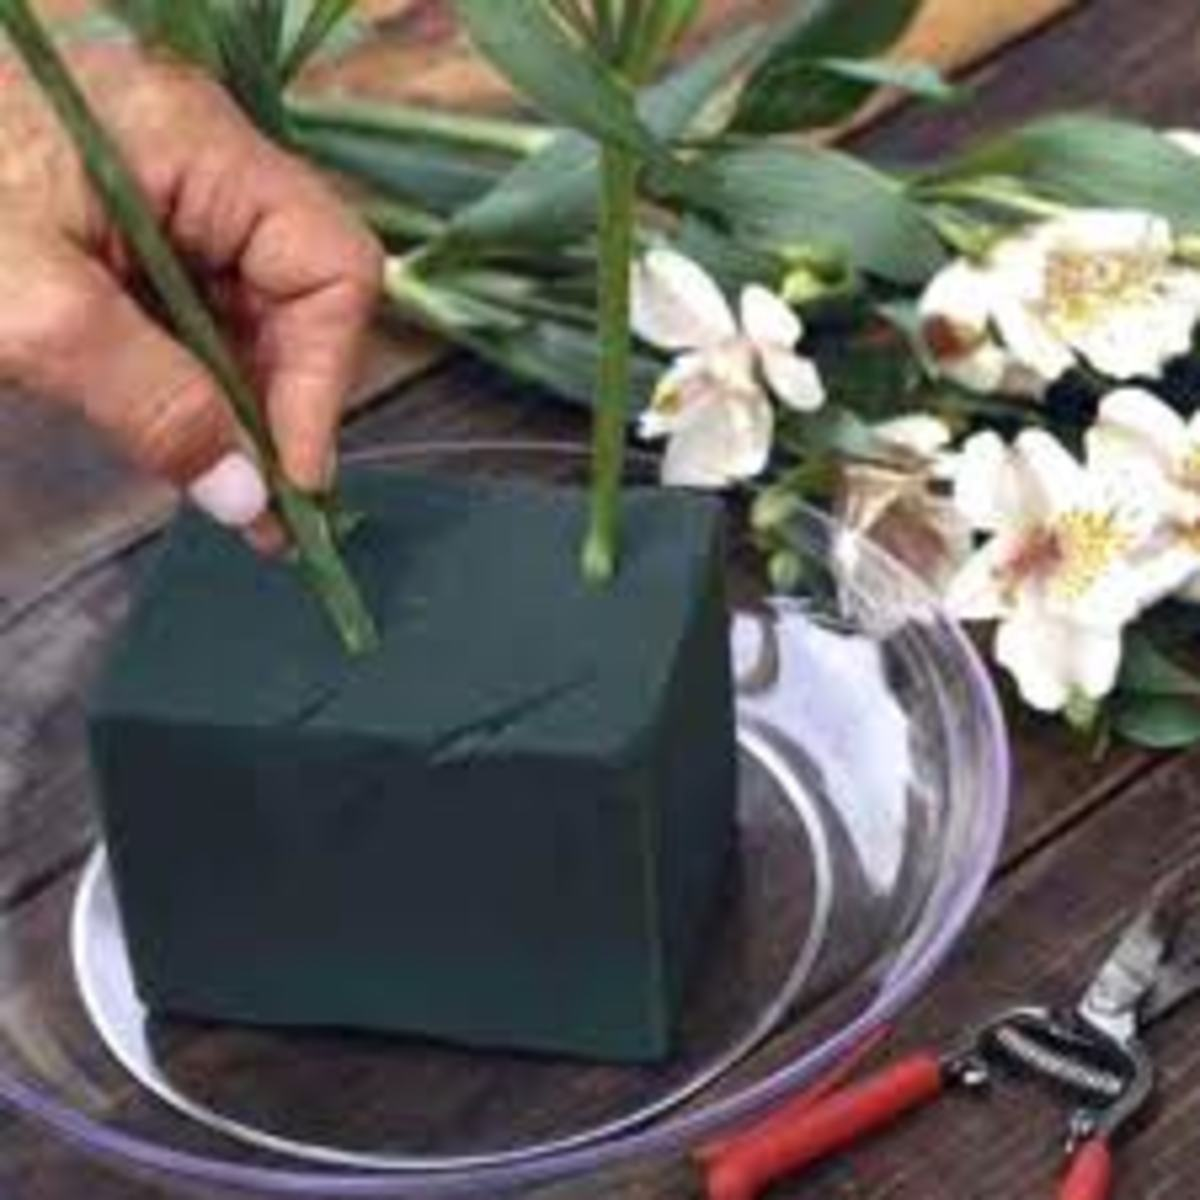 This is floral foam often used in an arrangement. It must be kept damp at all times or your flowers will wilt